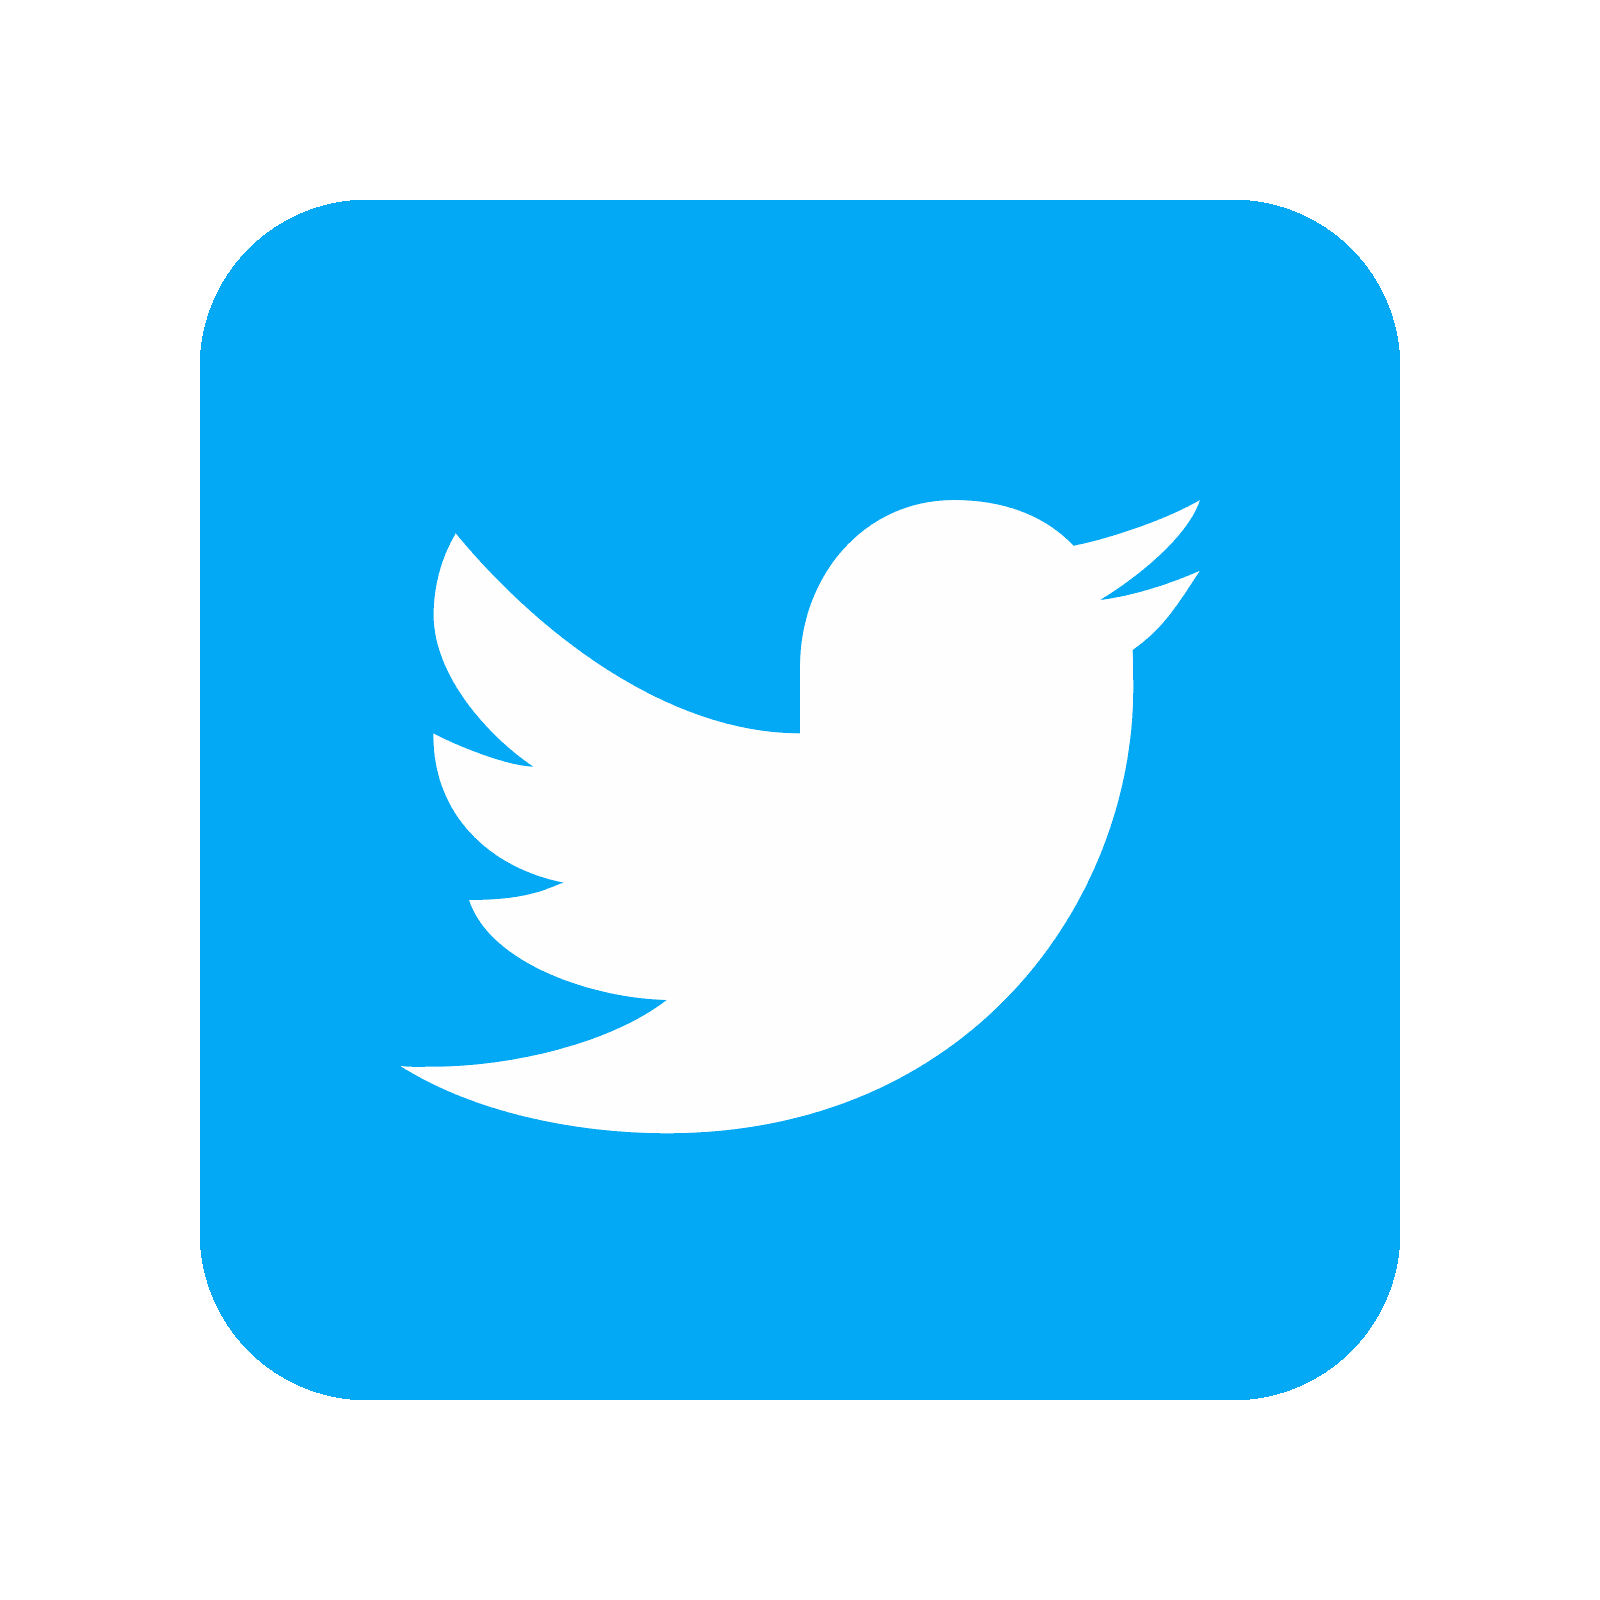 twitter icons png 1